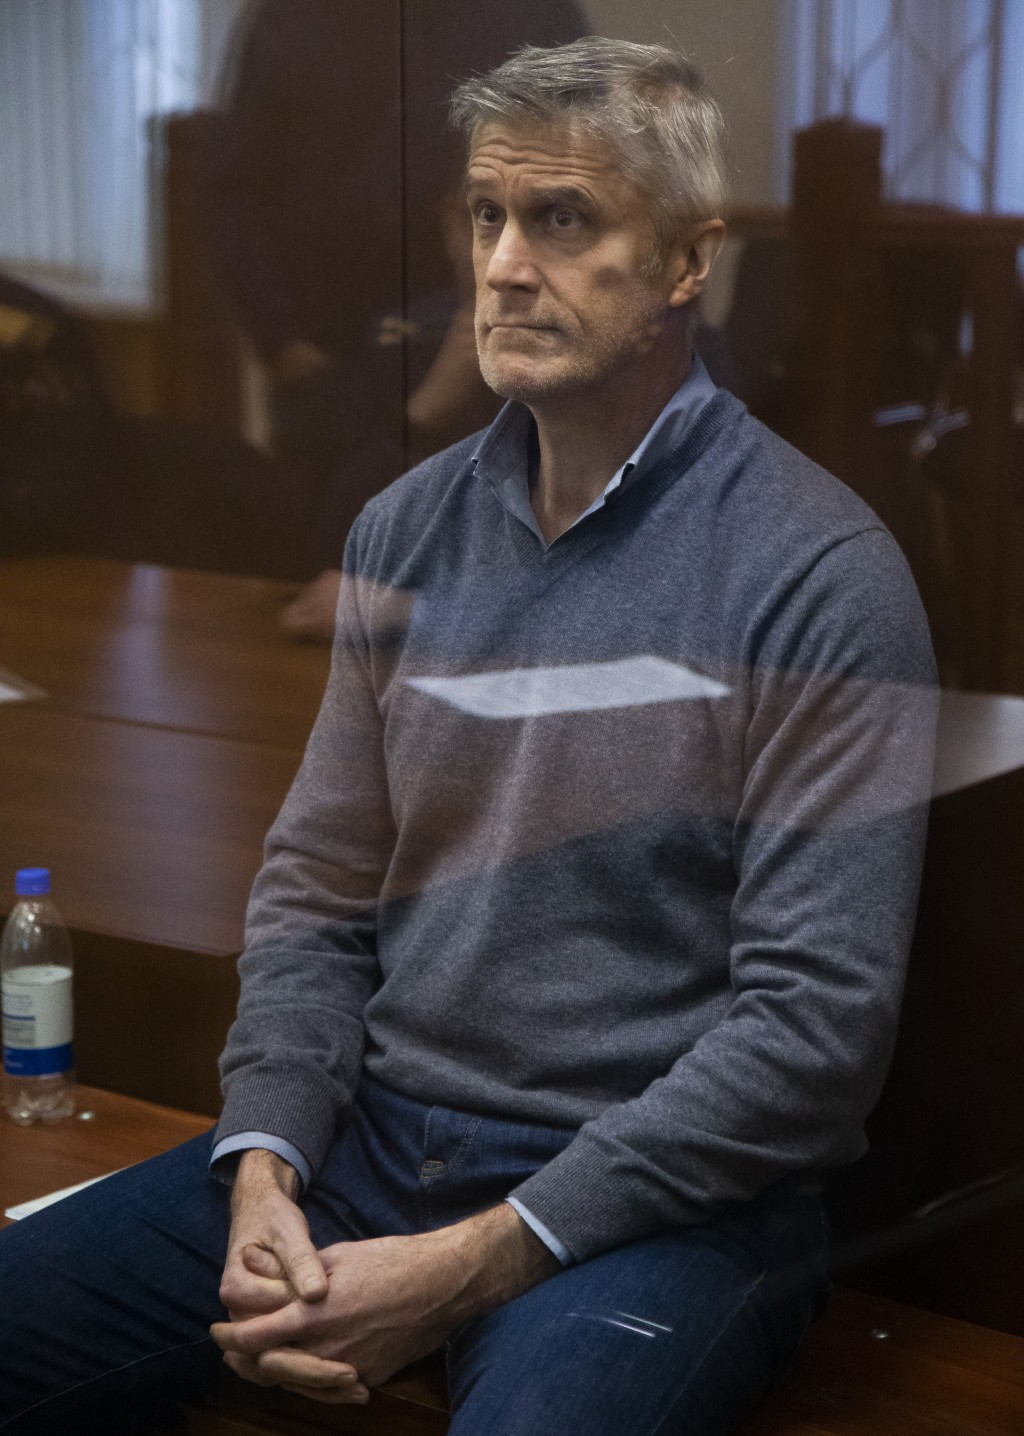 Founder of the Baring Vostok investment fund Michael Calvey looks through a cage's class in the court room in Moscow, Russia, Saturday, Feb. 16, 2019....